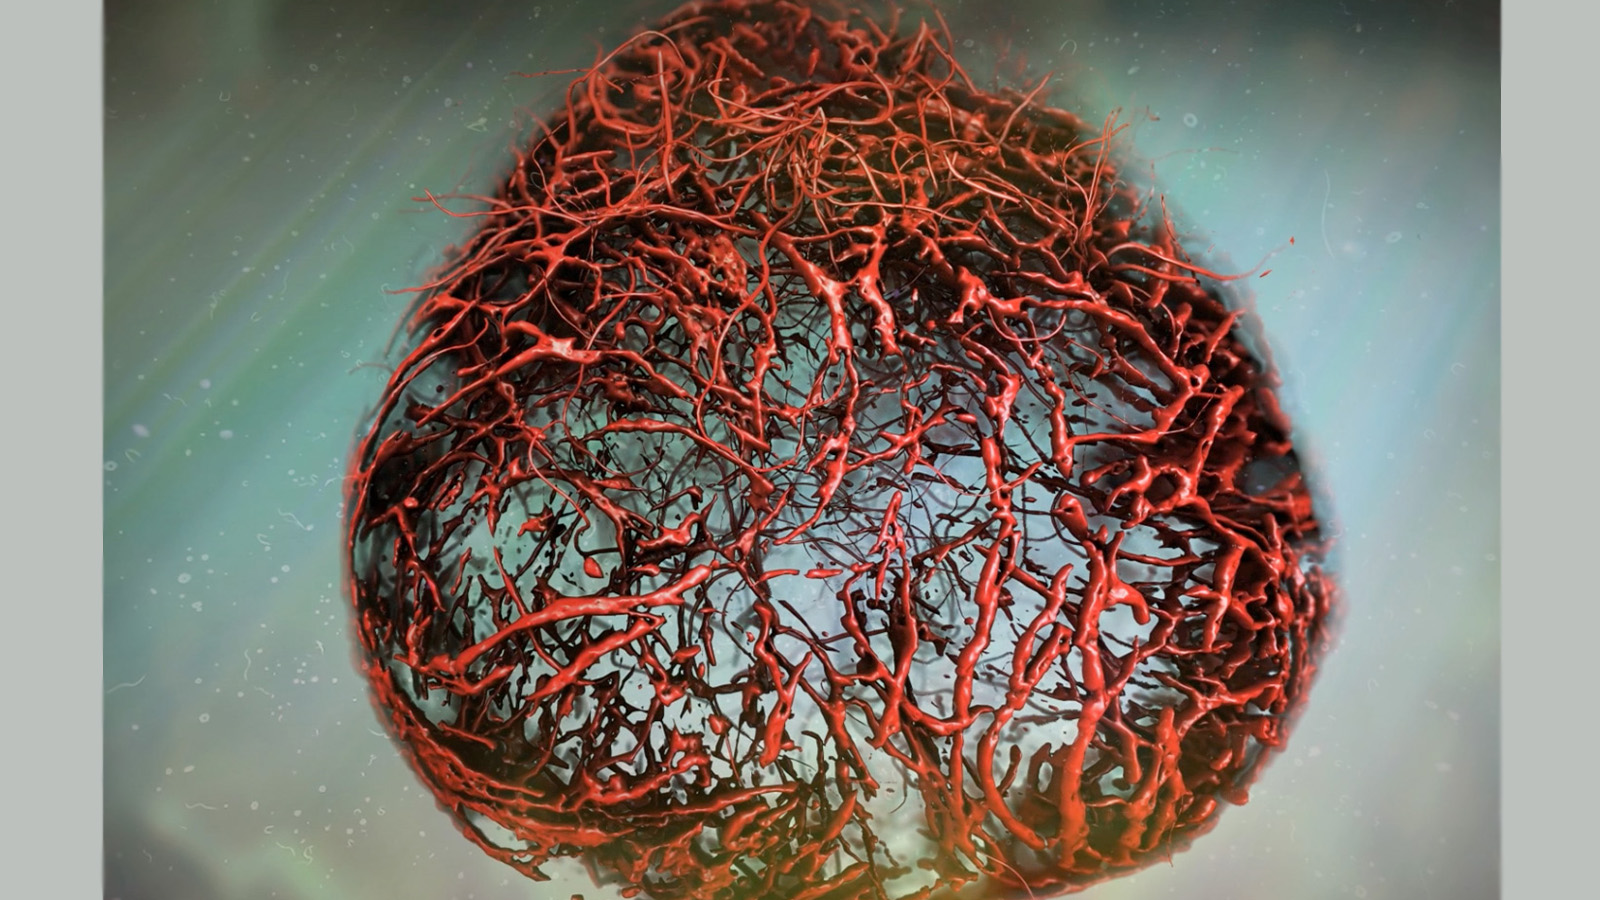 Scientists Grow Human Blood Vessels in Lab